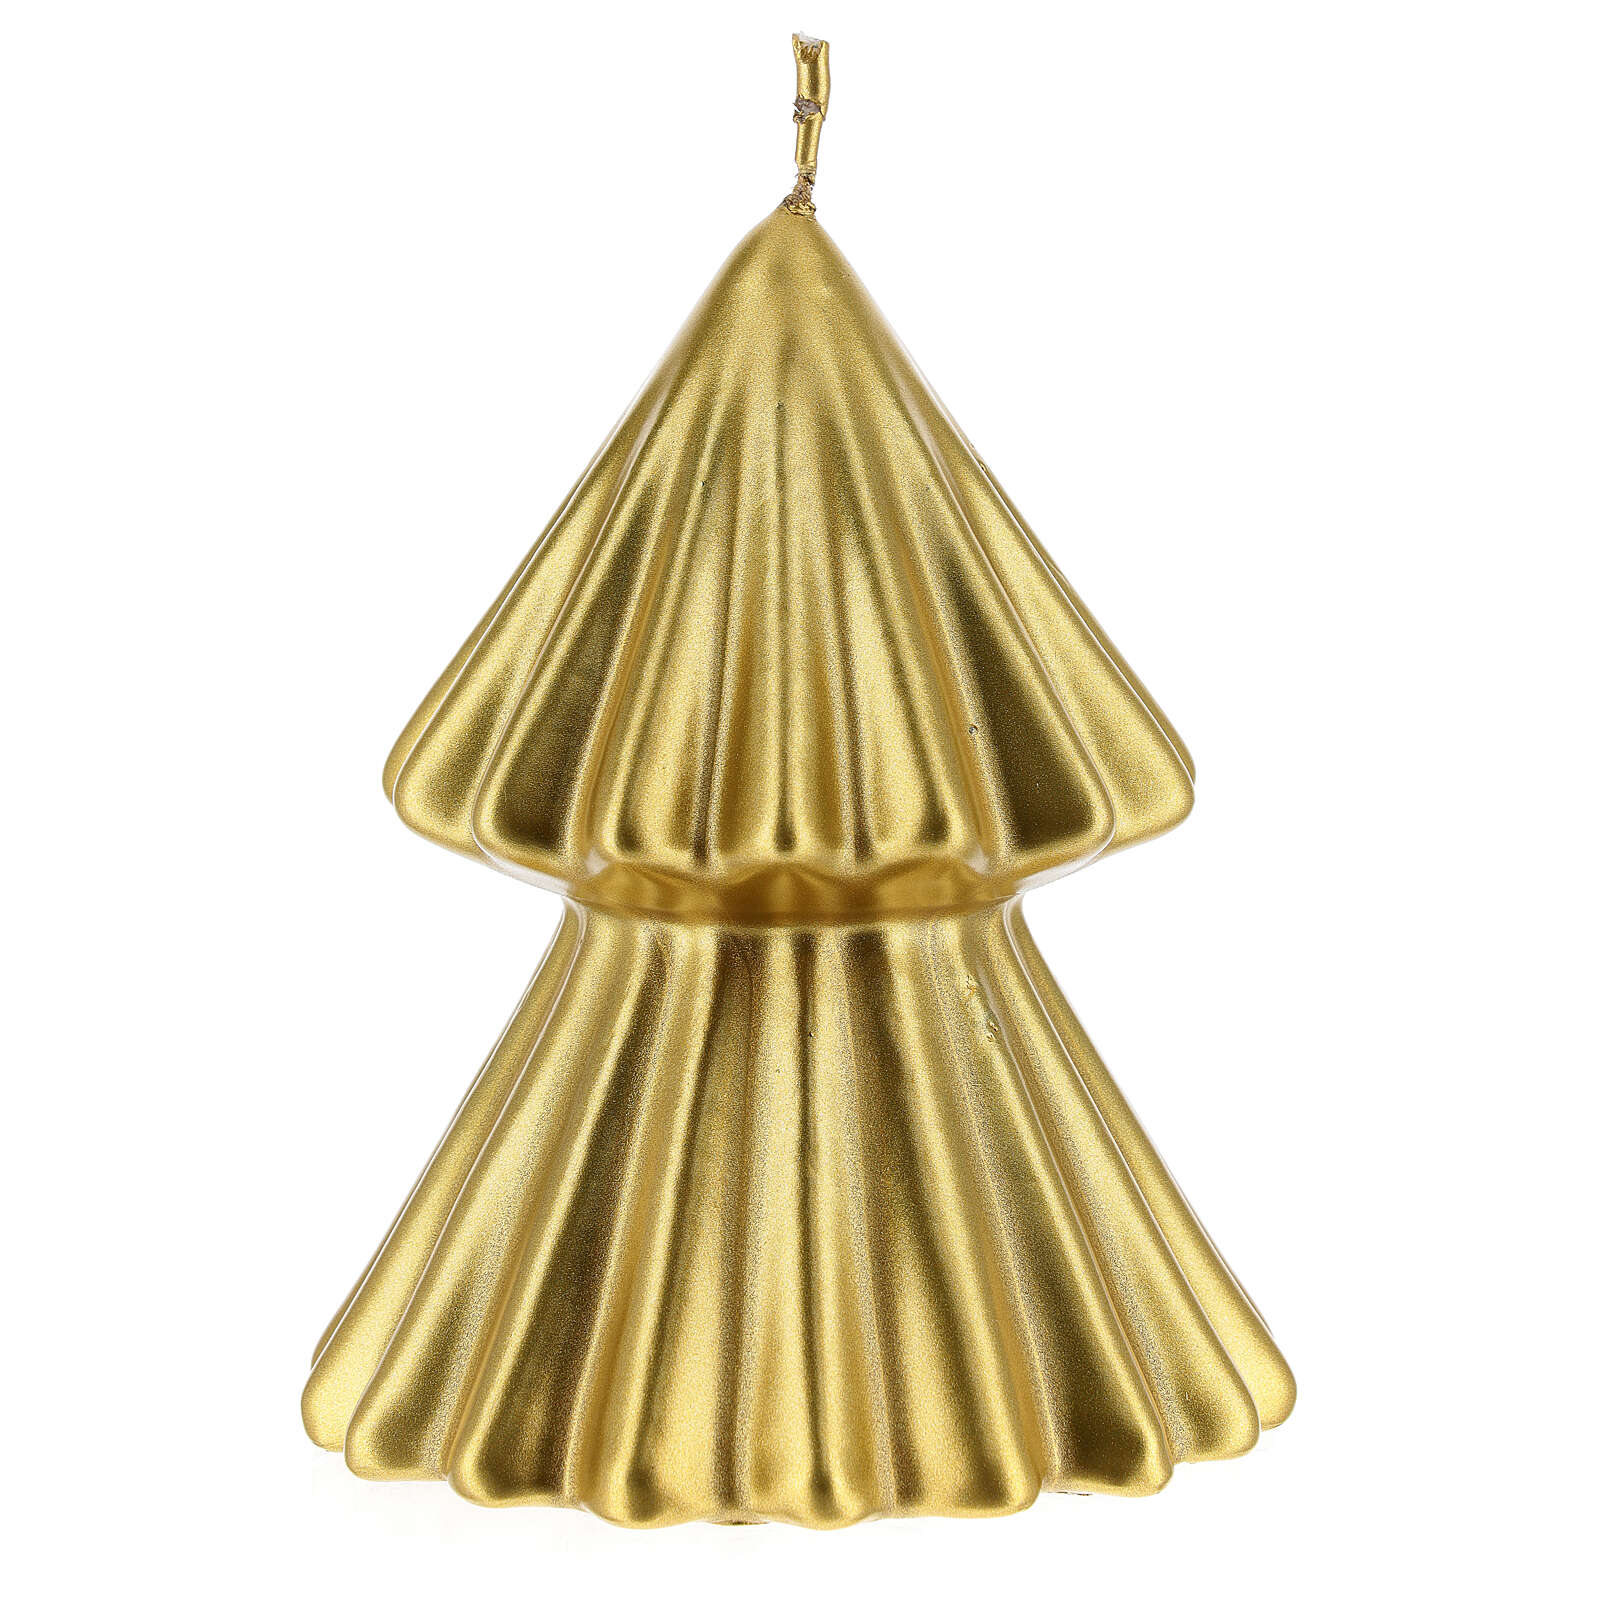 Golden Christmas tree candle Tokyo 5 in 3